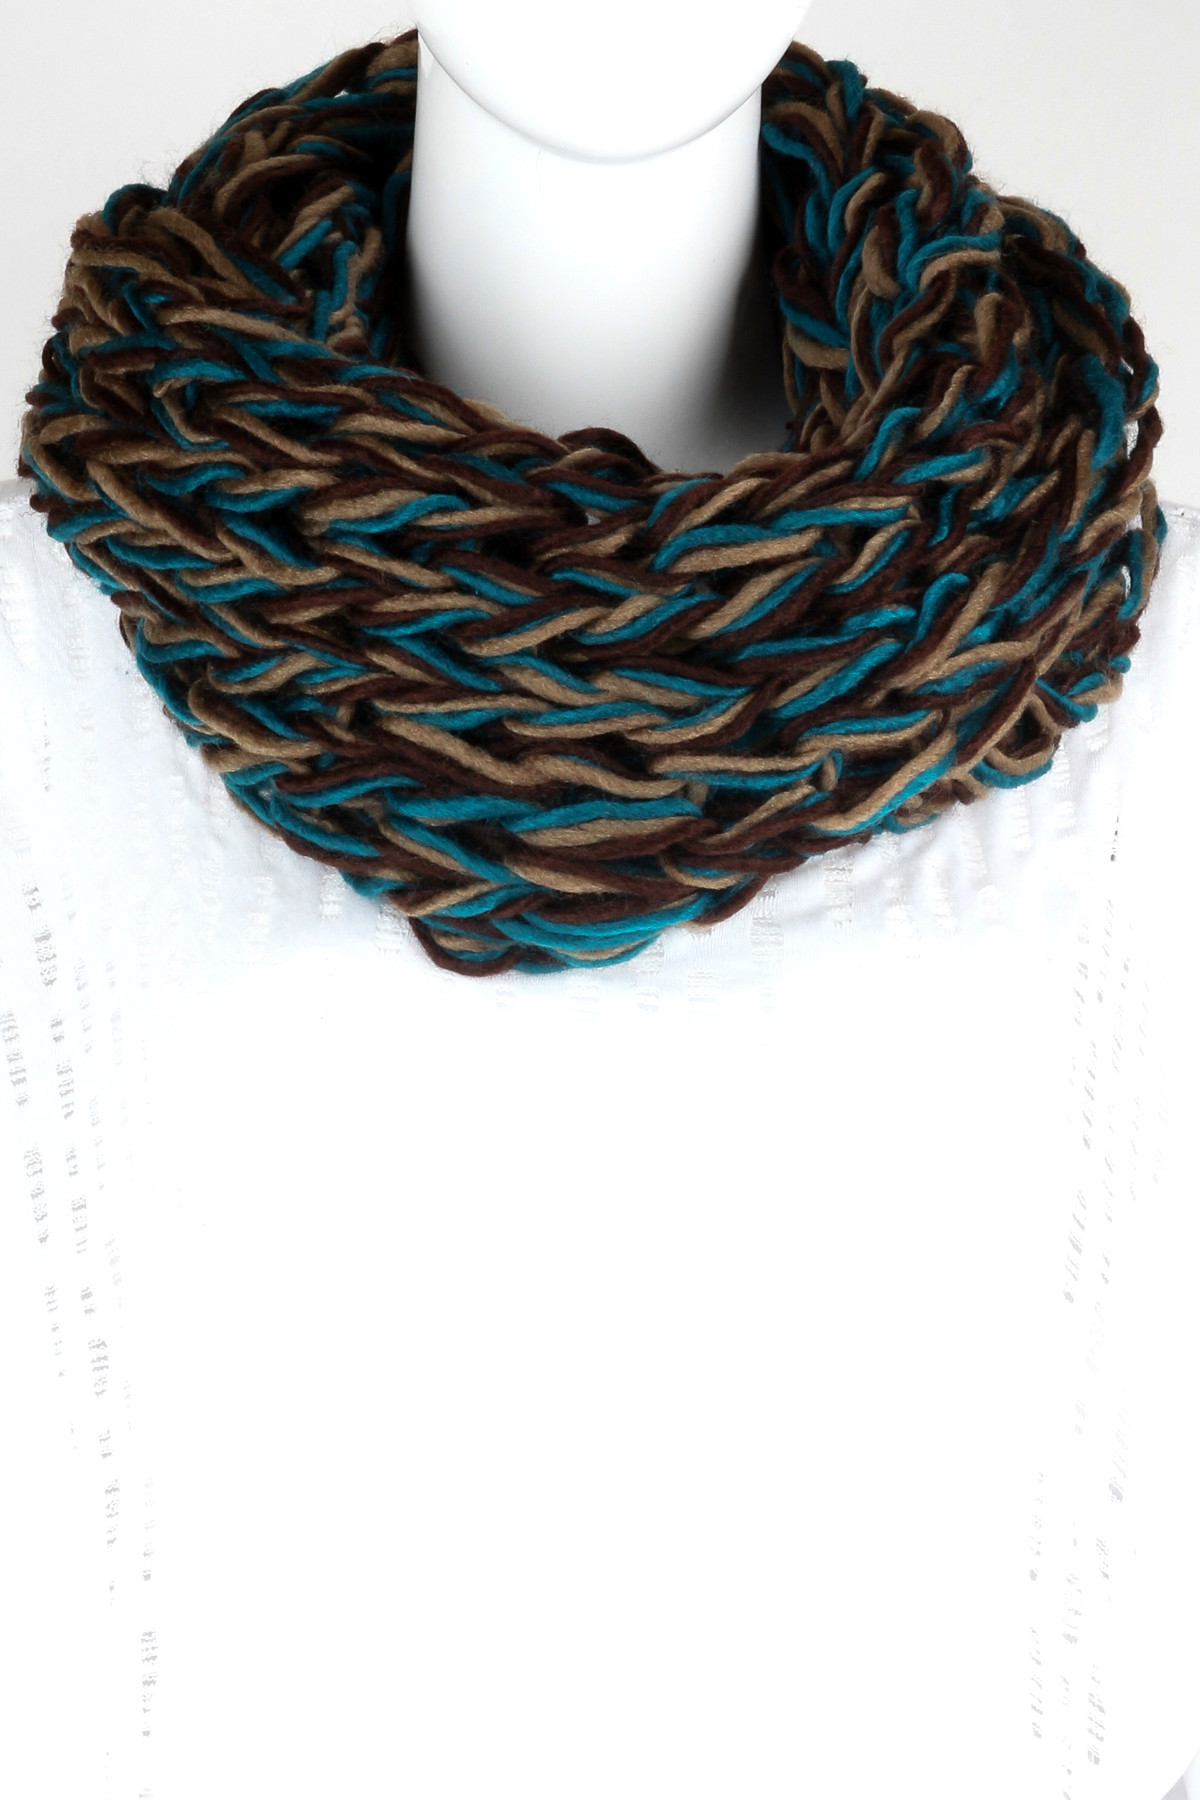 Best Of Knitted Yarn Infinity Scarf Scarves Yarn Scarf Of Attractive 49 Photos Yarn Scarf